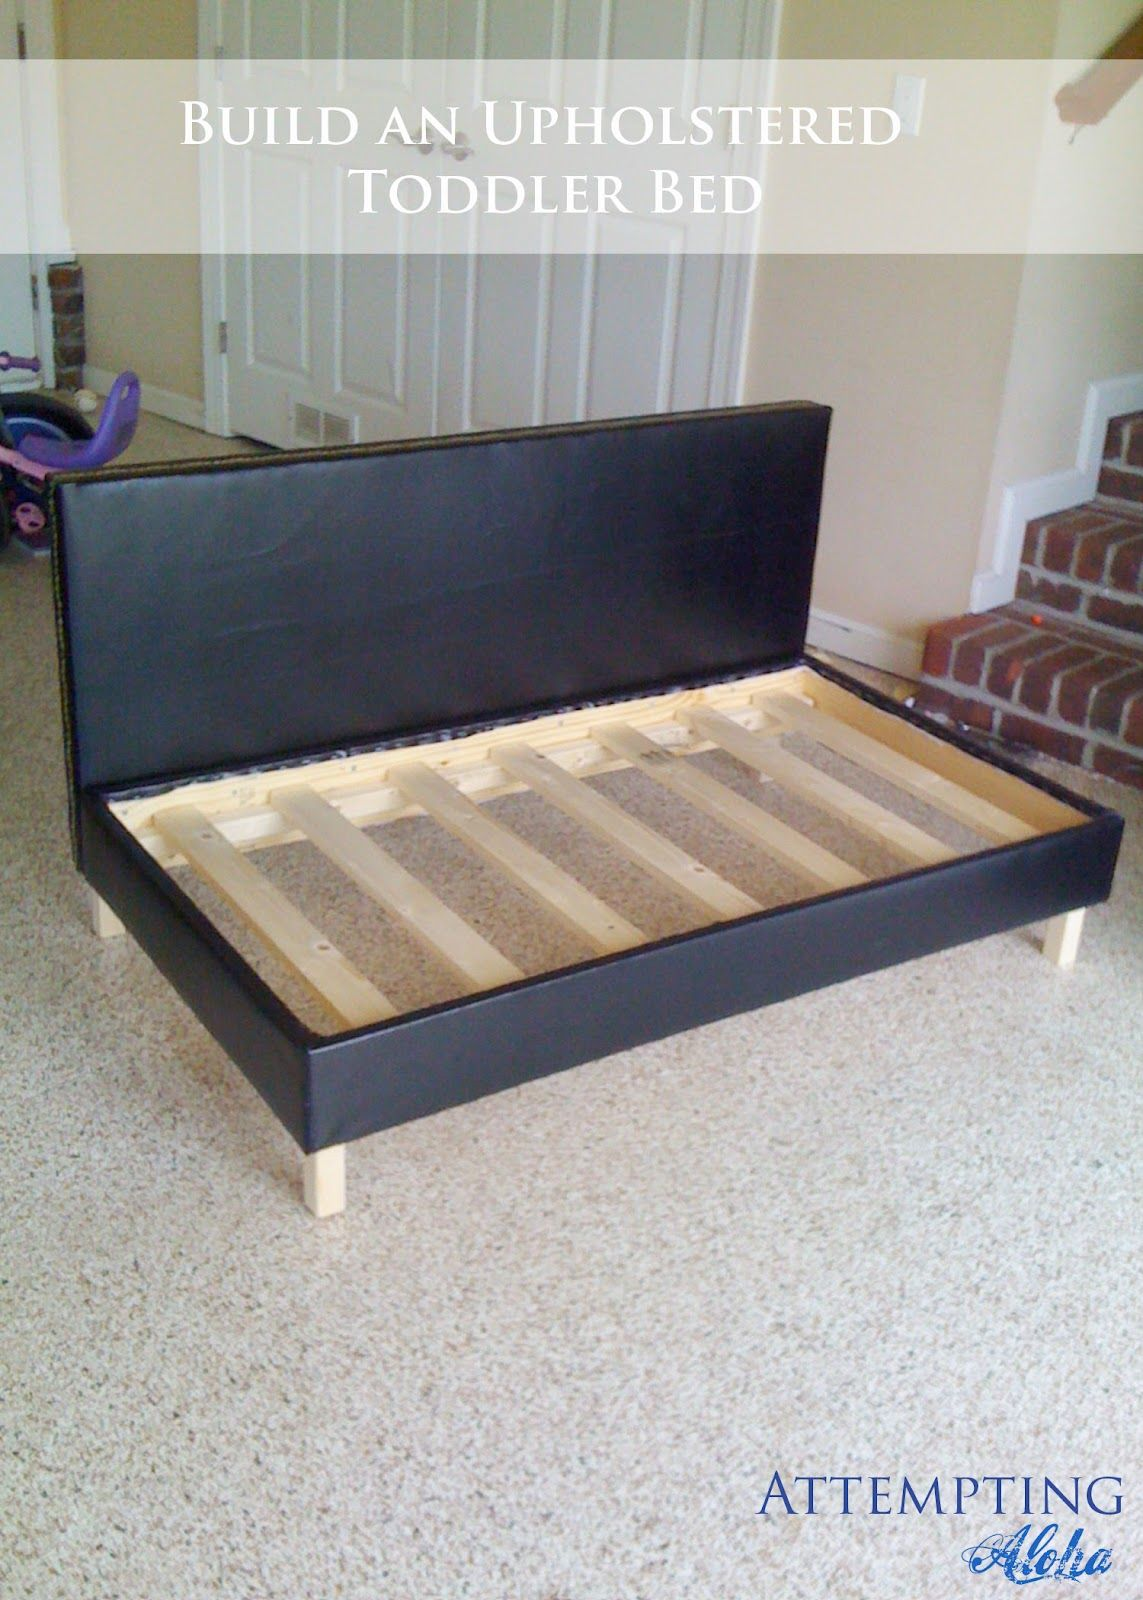 Diy Upholstered Toddler Bed Couch Plans